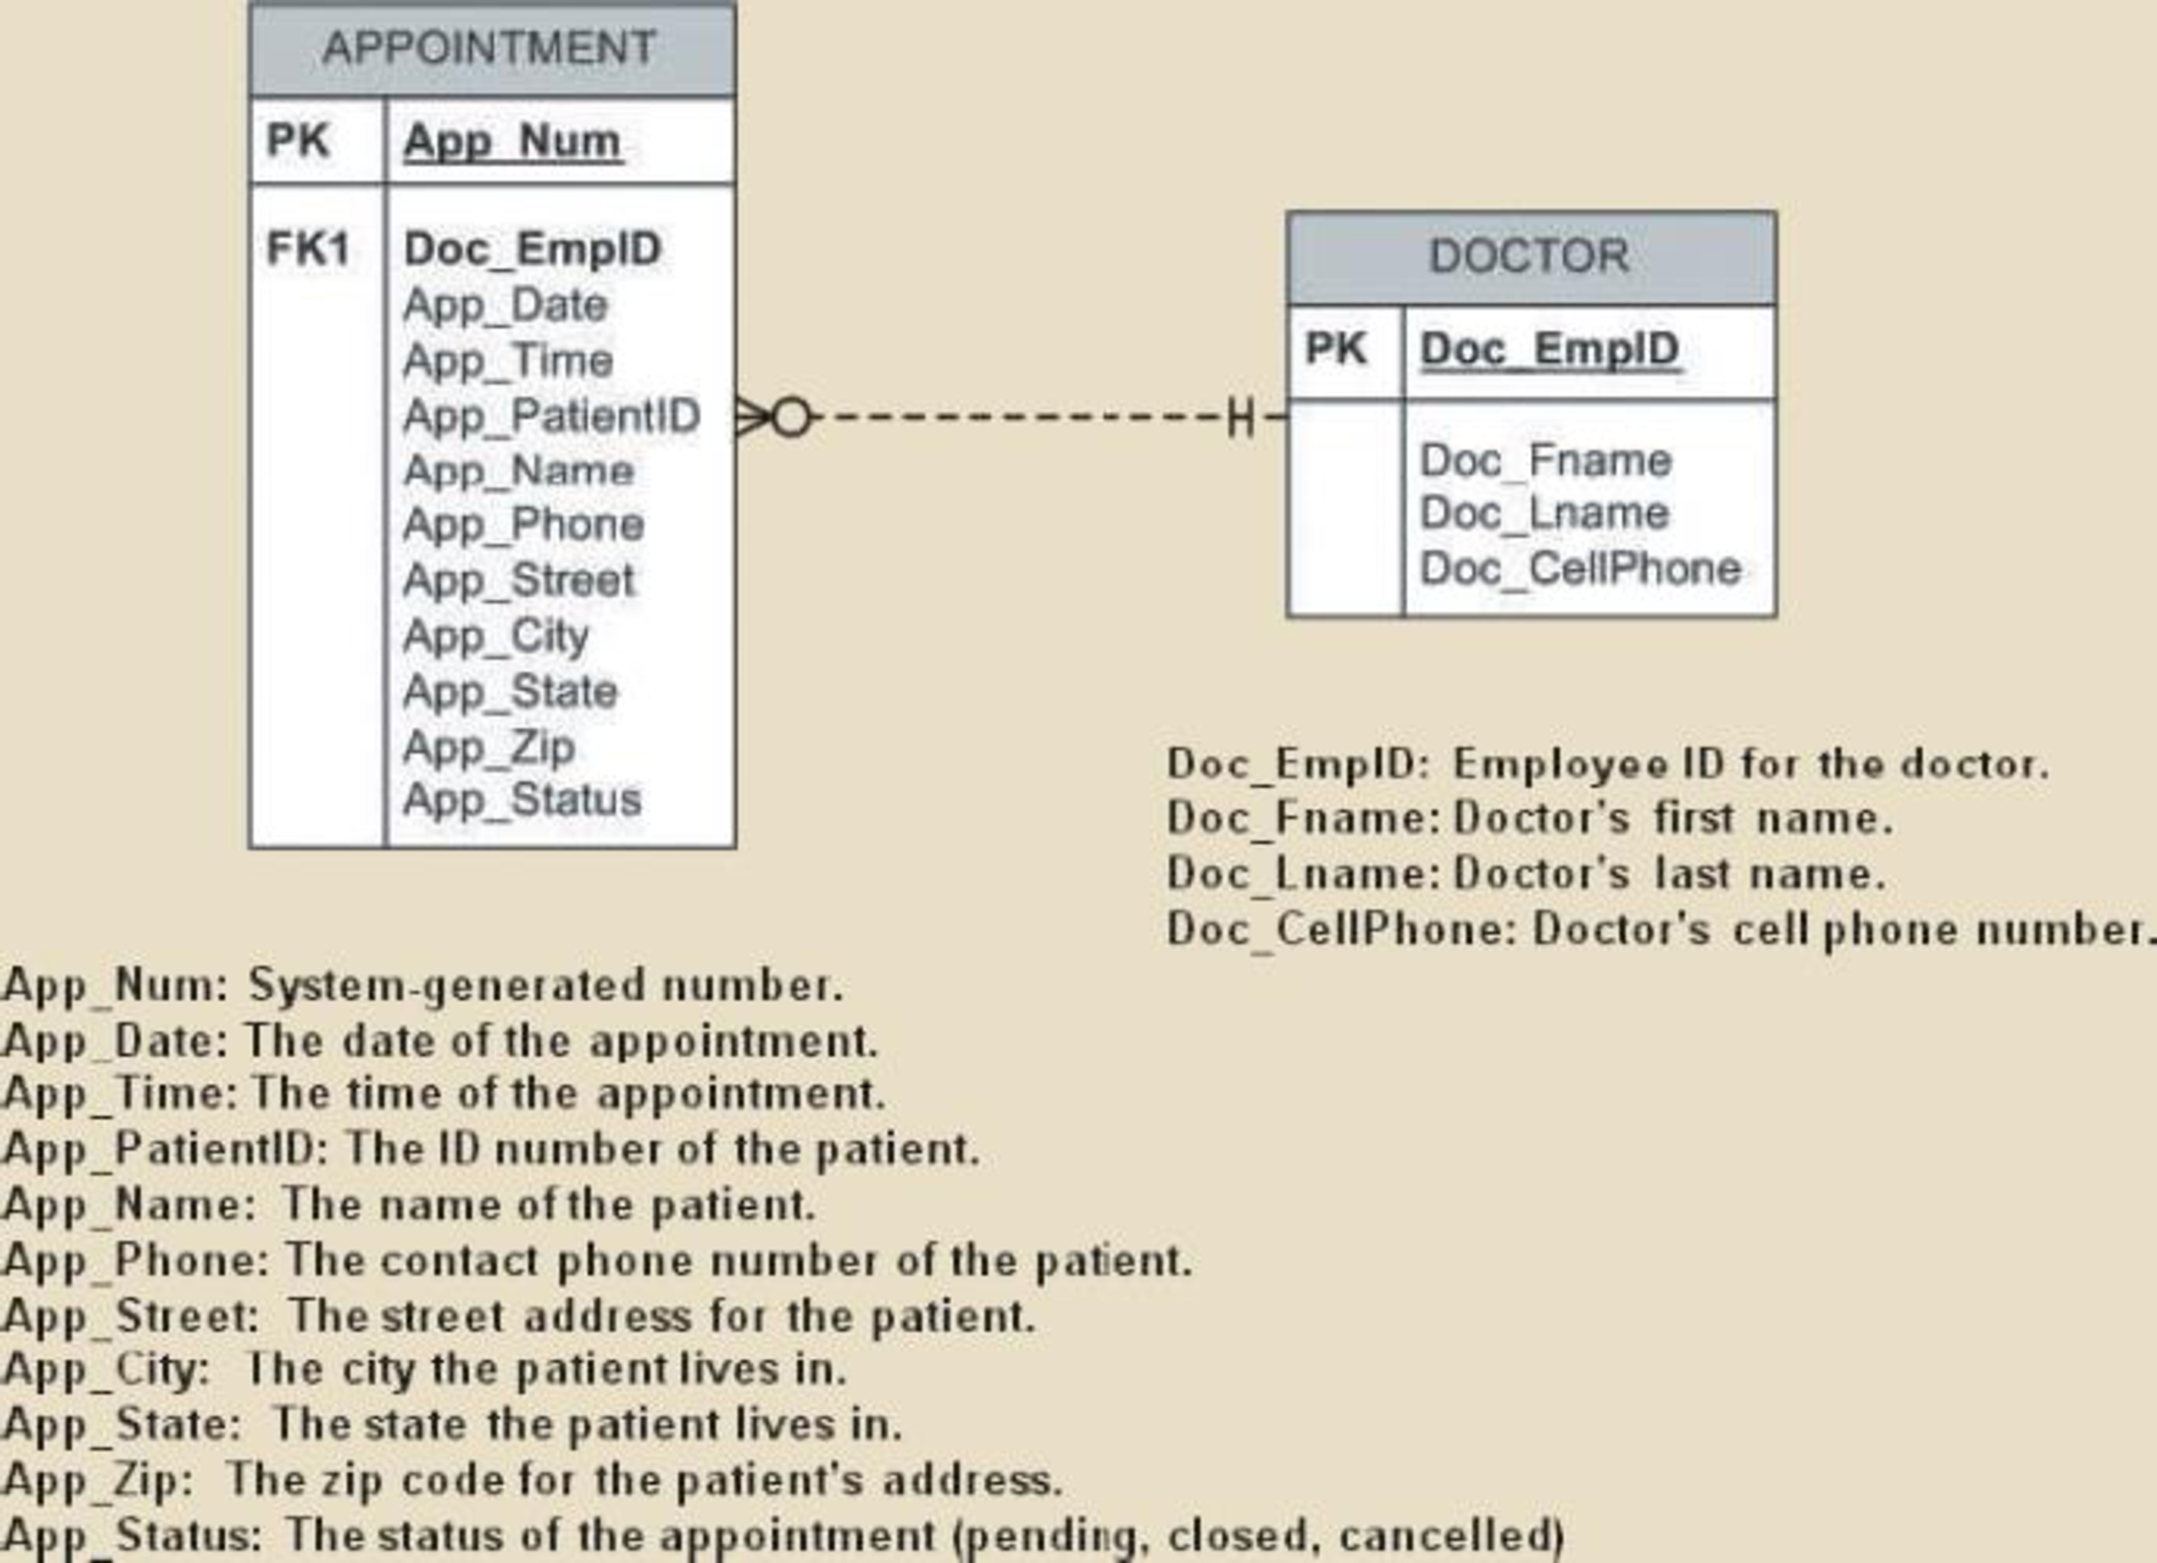 Using The Descriptions Of The Attributes Given In The Figure in Convert Er Diagram To 3Nf